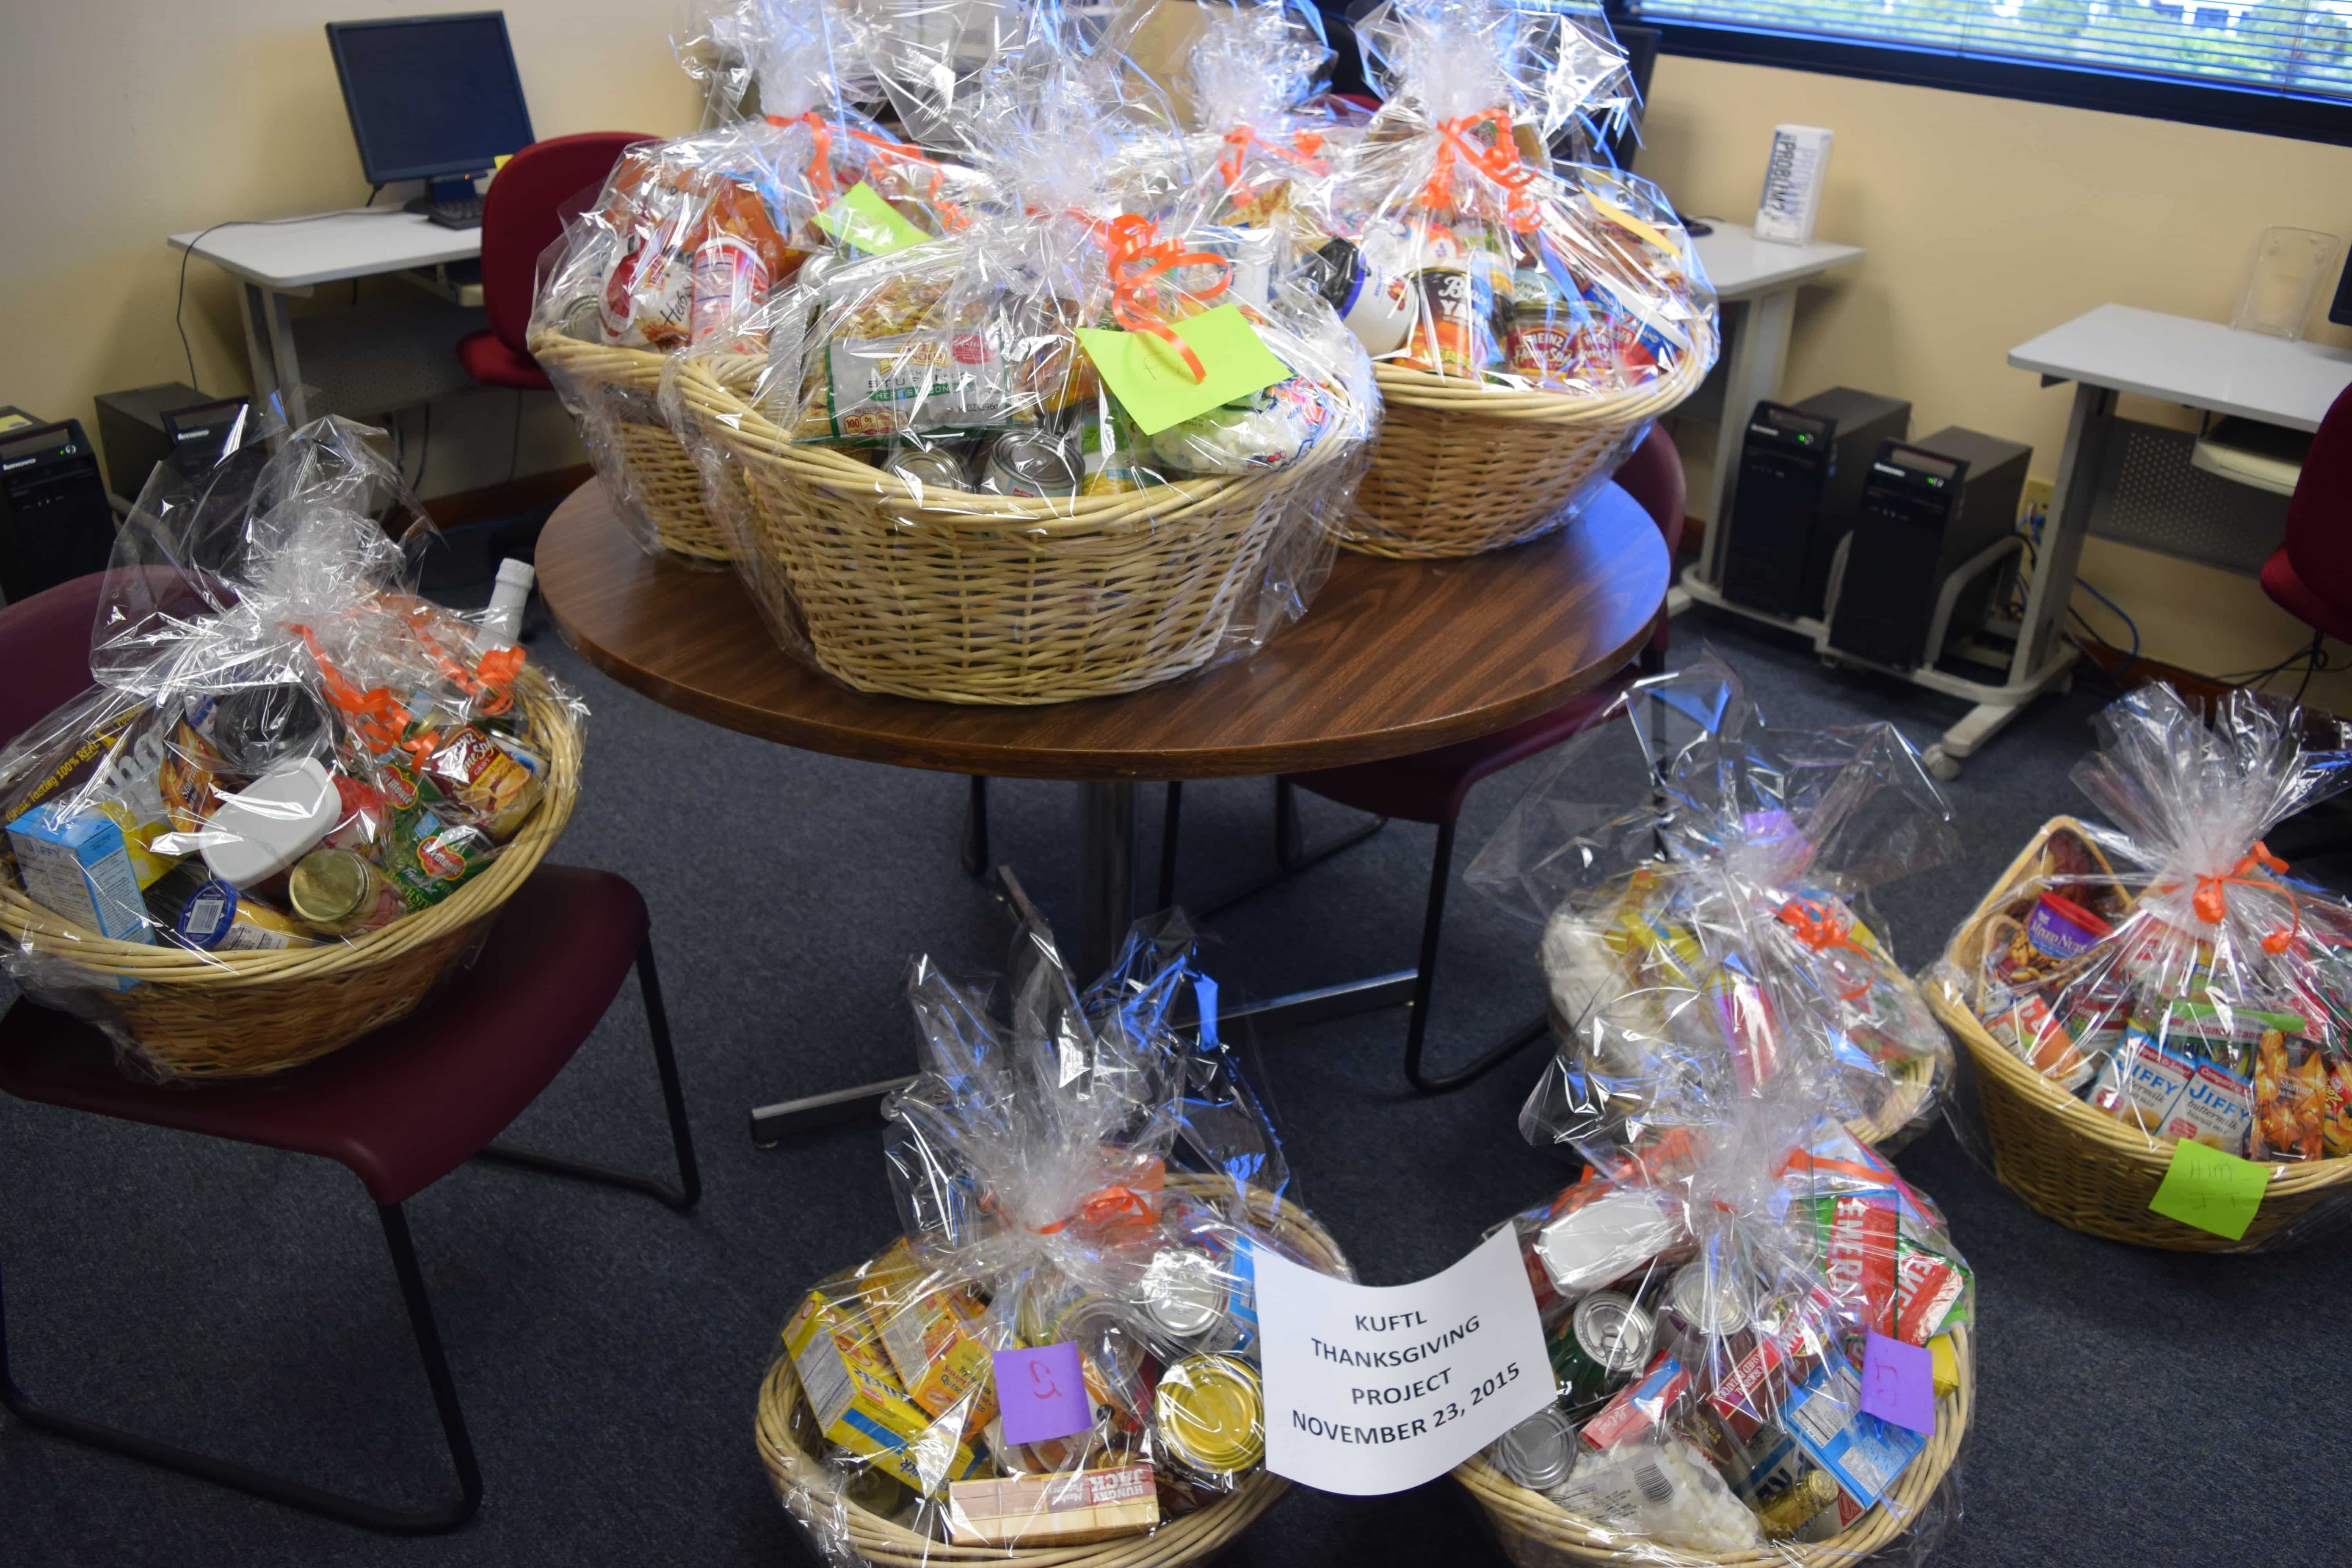 The Ft. Lauderdale Campus Created Baskets for Thanksgiving